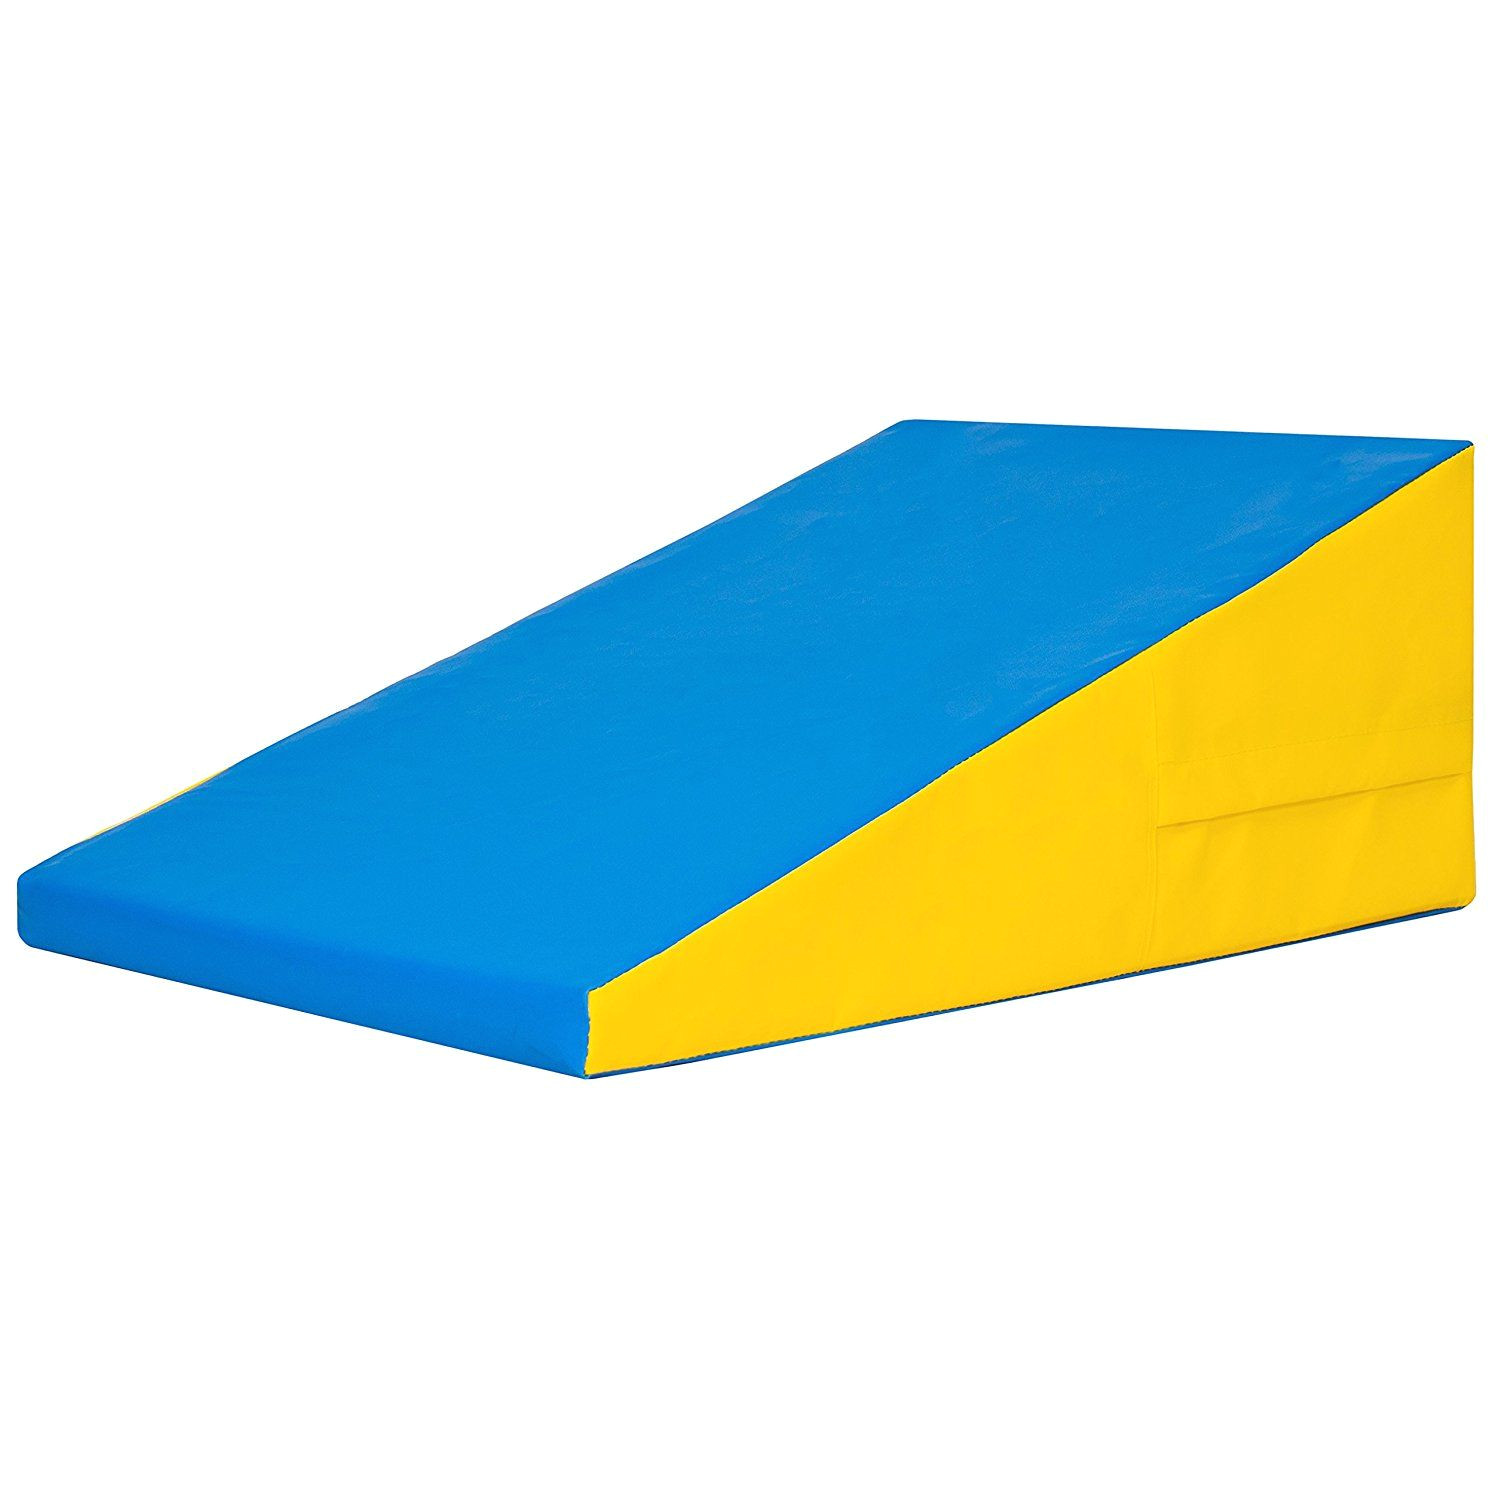 best choice products incline gymnastics mat training foam triangle gym tumbling wedge blue yellow awesome product click the image weight loss